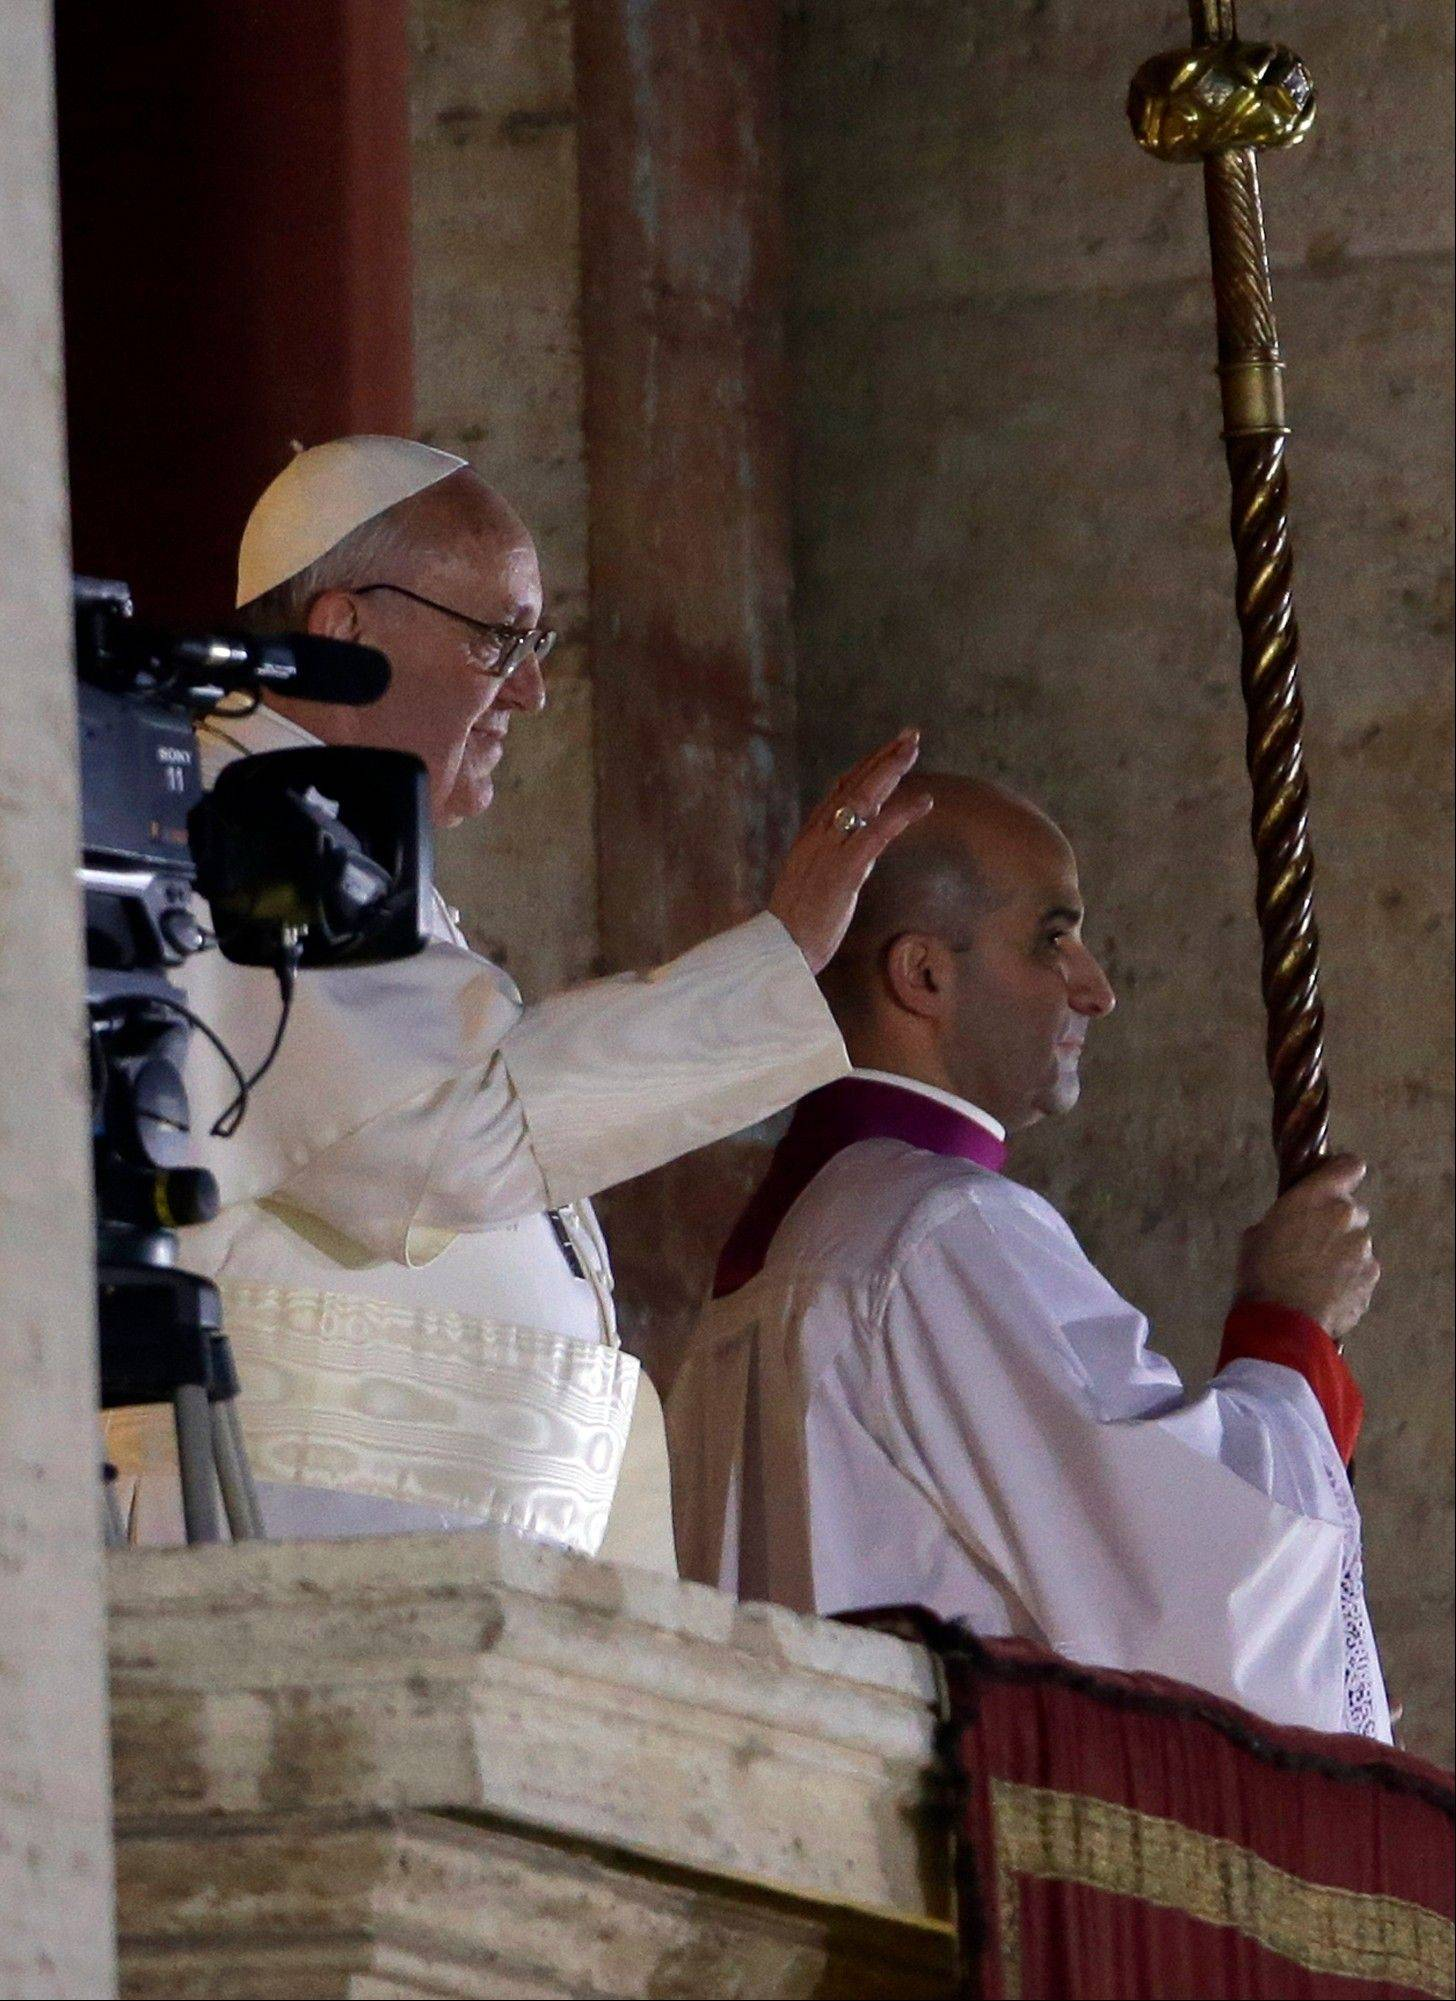 Pope Francis waves to the crowd from the central balcony of St. Peter's Basilica at the Vatican, Wednesday, March 13, 2013. Cardinal Jorge Bergoglio who chose the name of Francis is the 266th pontiff of the Roman Catholic Church.